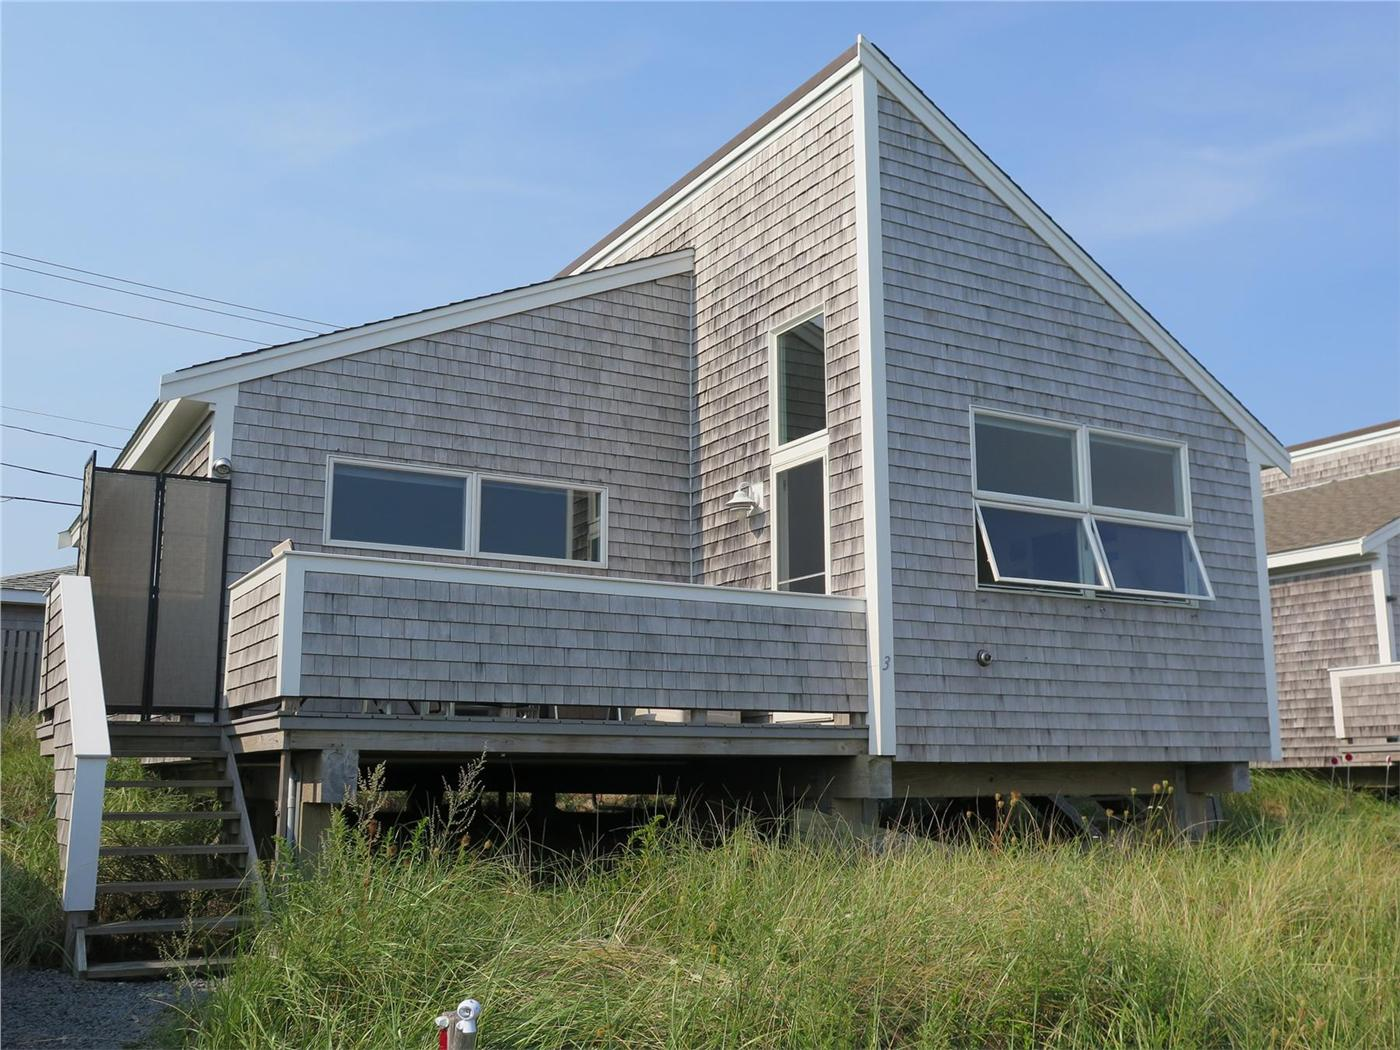 provincetown cottage cape seashore on weathered stock with garden flower national street photo ma in cod commercial s cottages